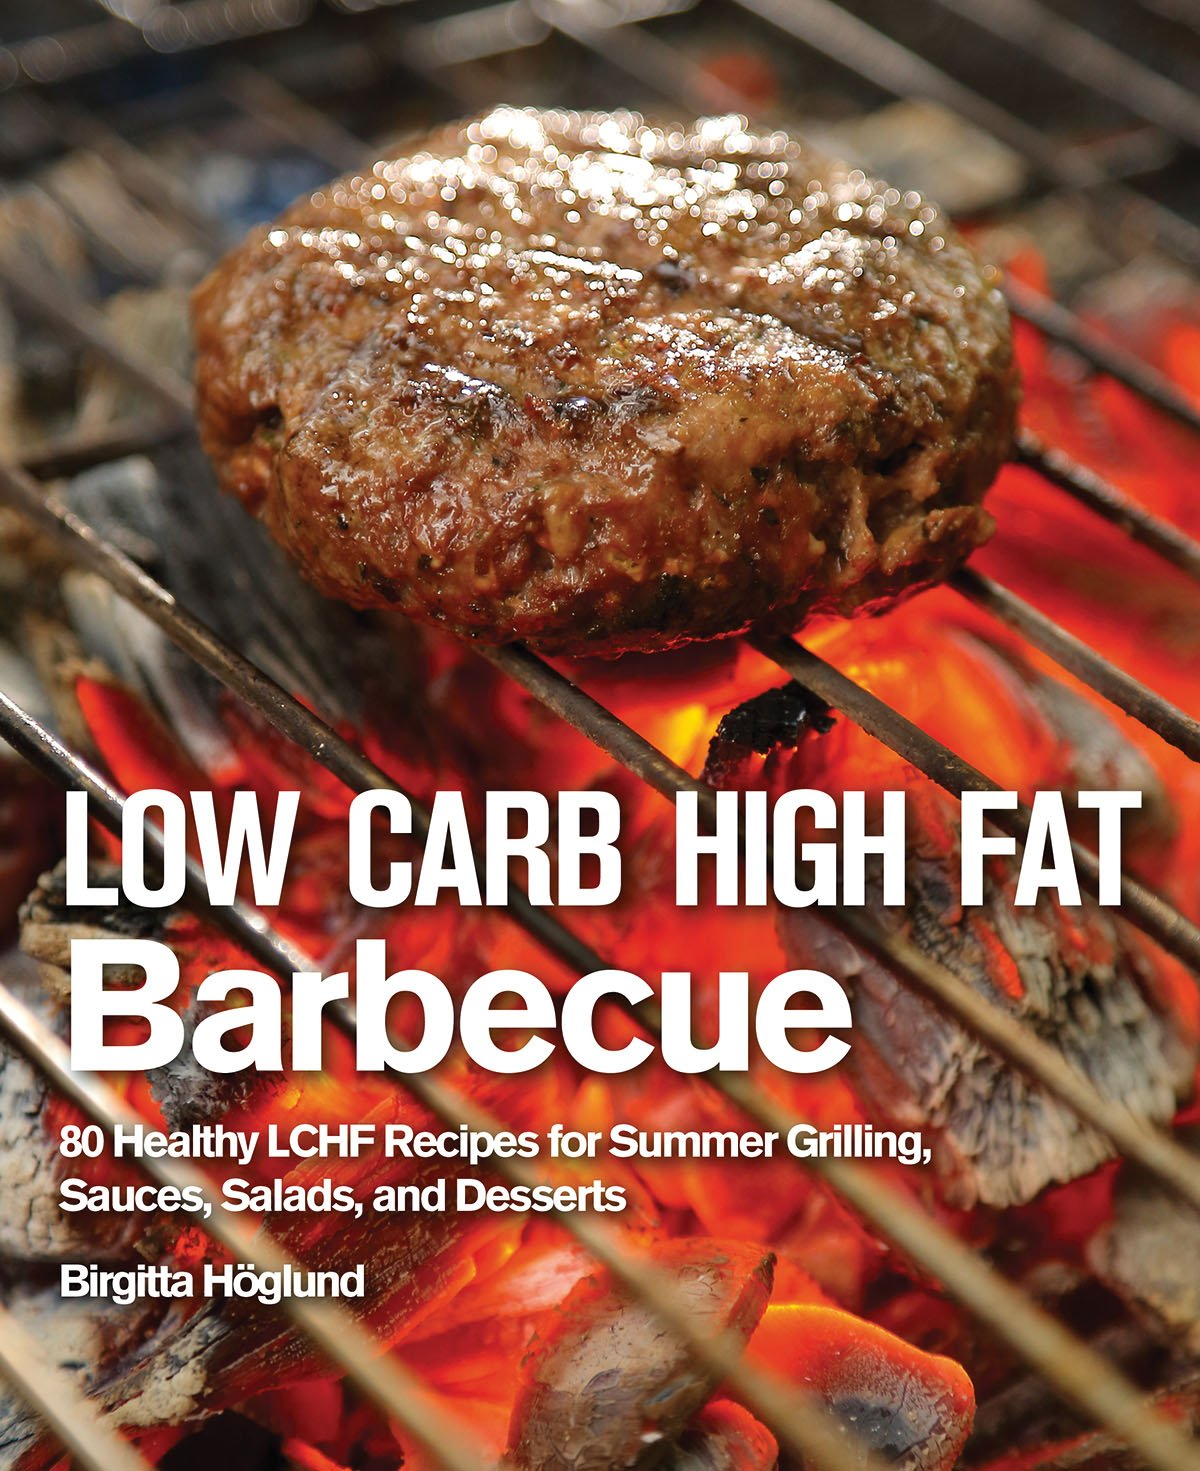 Low Carb High Fat Barbecue: 80 Healthy LCHF Recipes for Summer Grilling, Sauces, Salads, and Desserts pdf